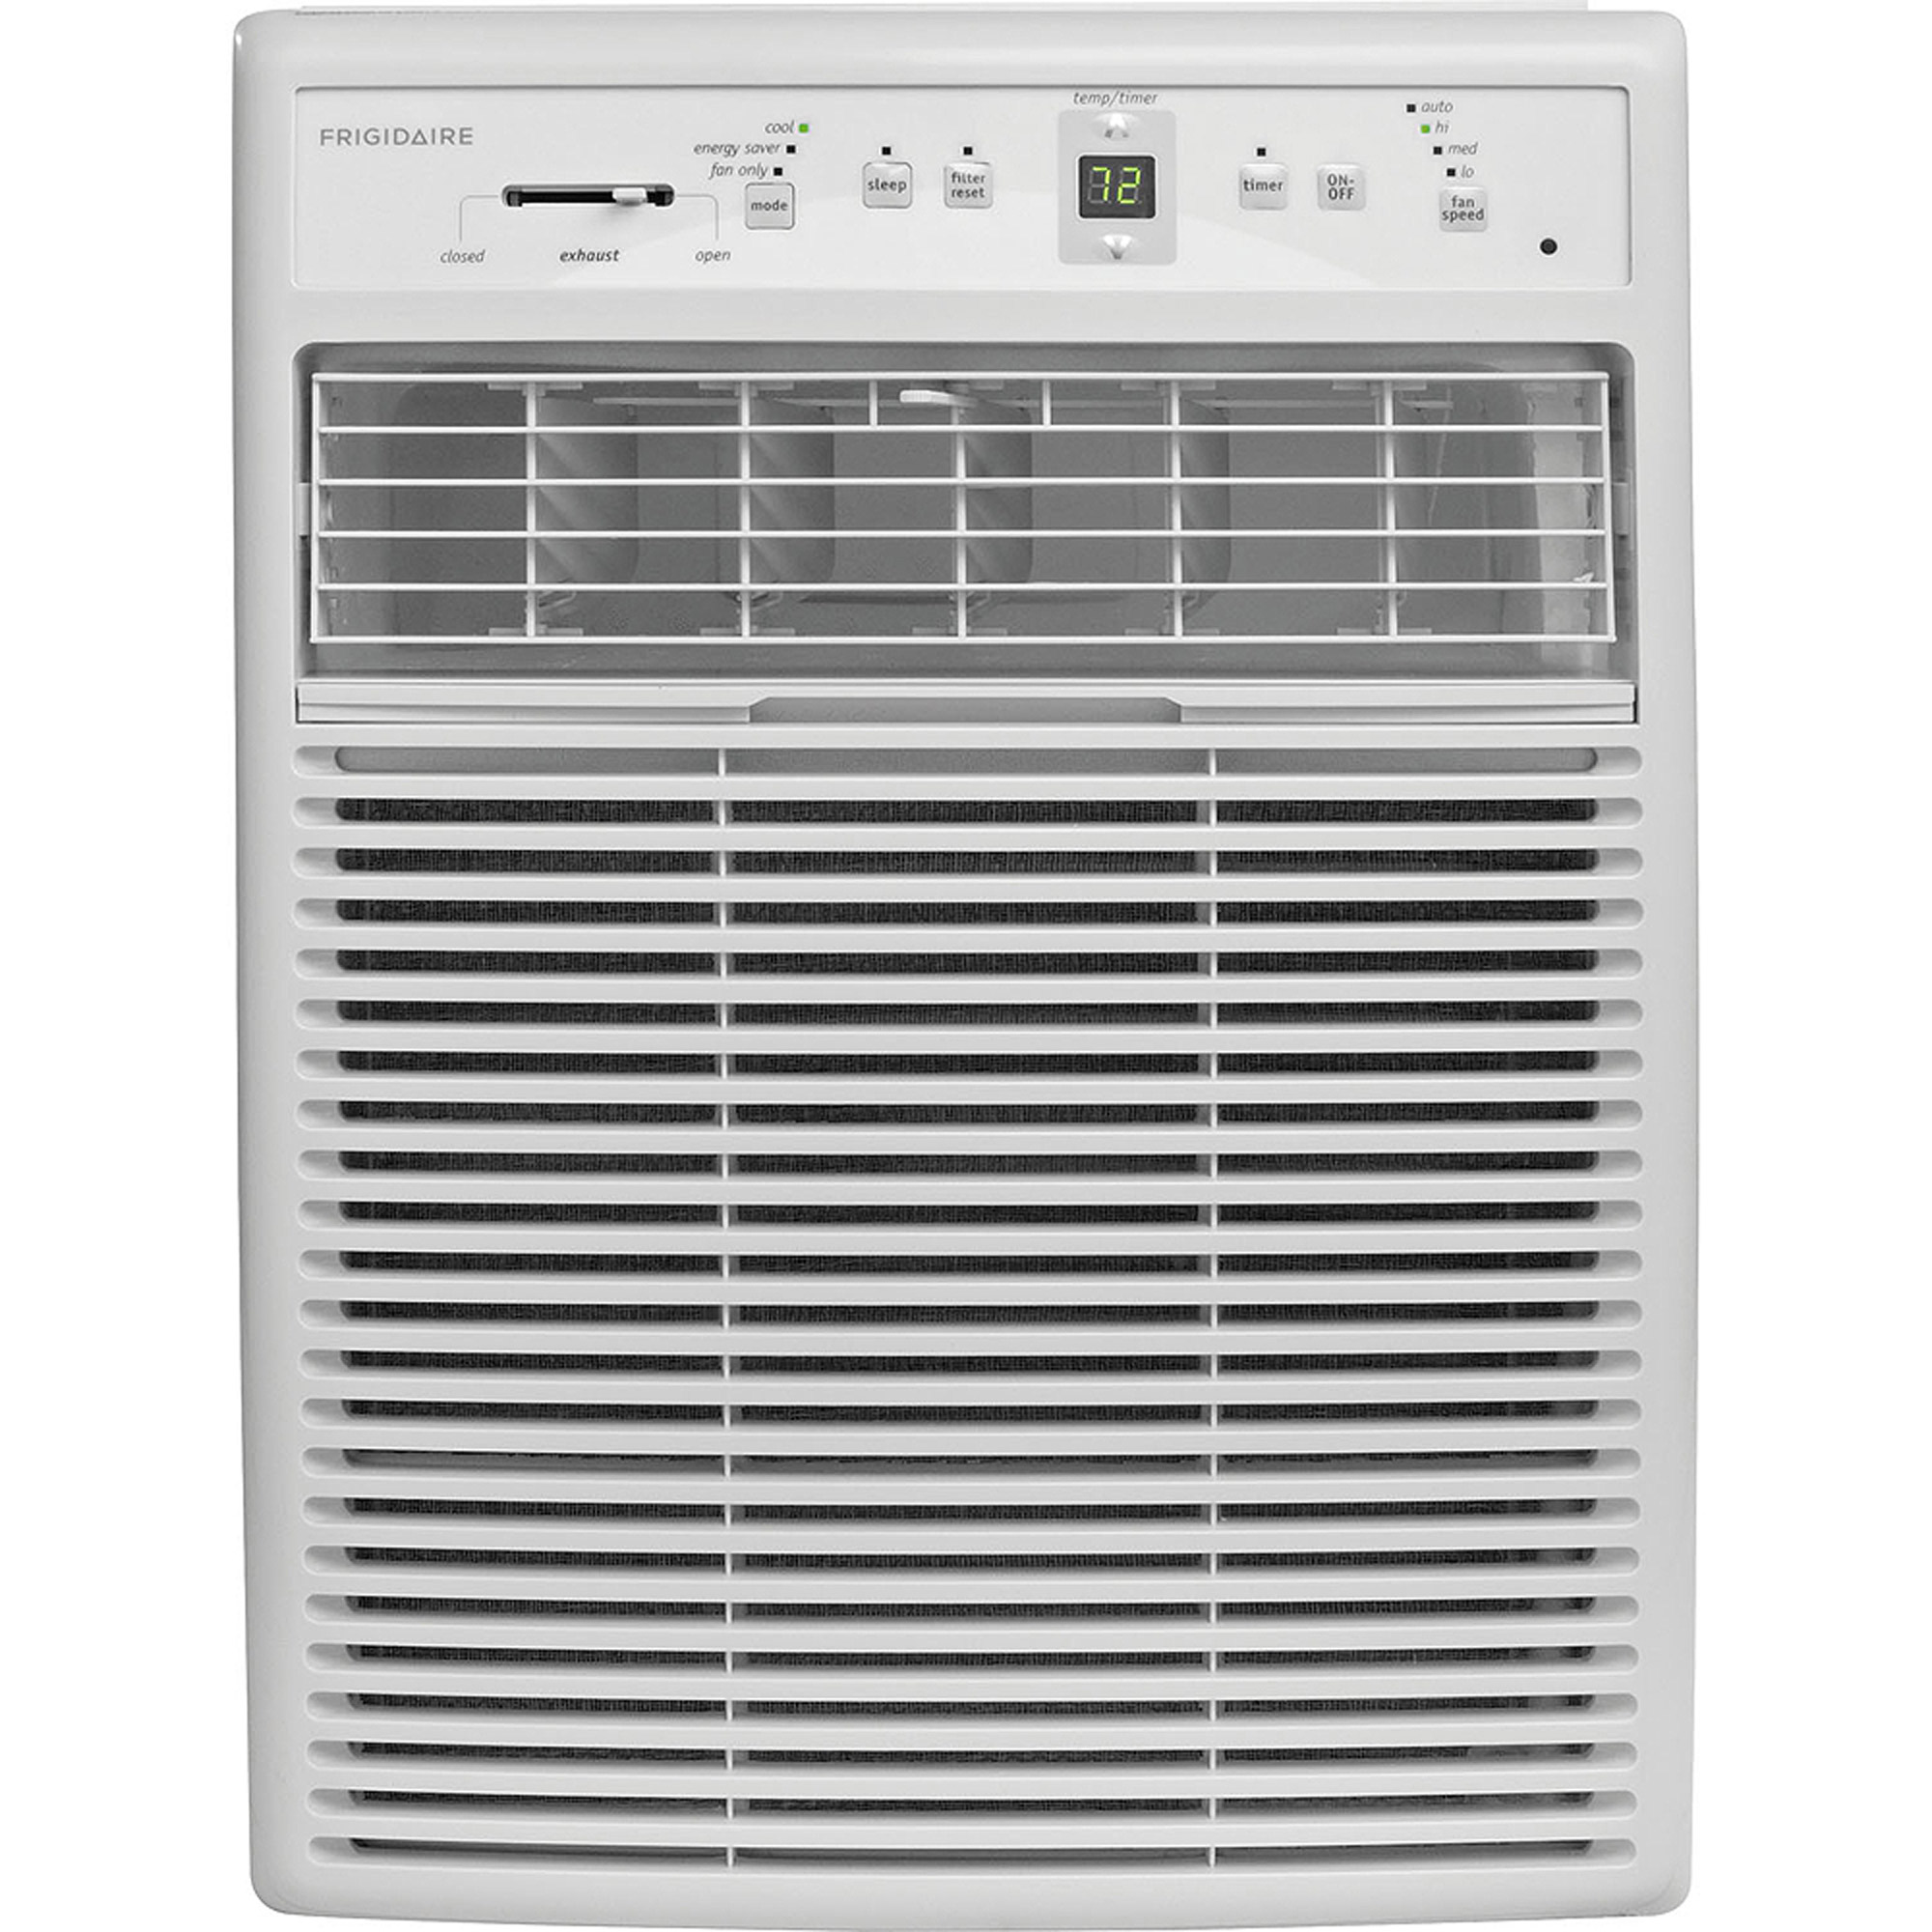 Frigidaire FFRS1022R1 Energy Efficient 10,000-BTU 115V Slider/Casement Room Air Conditioner with Full-Function Remote Control